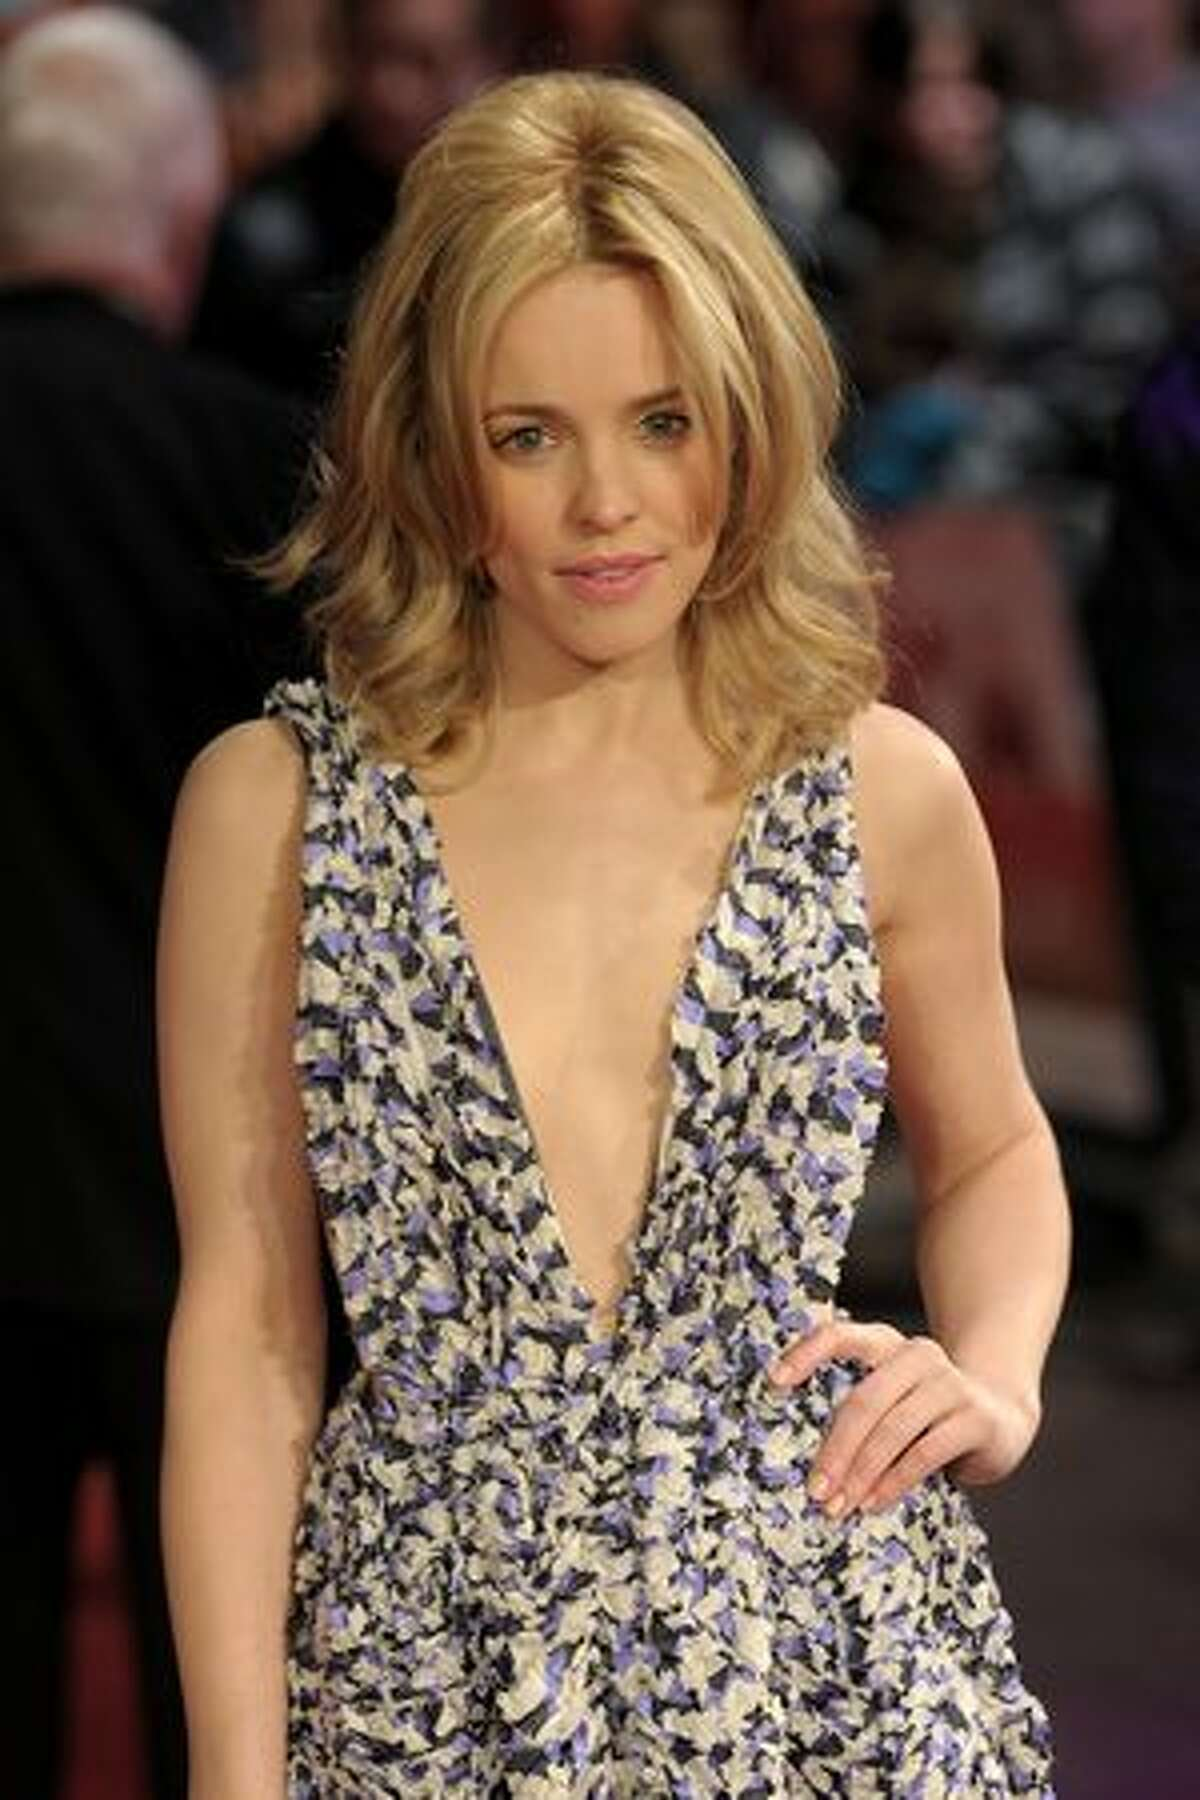 LONDON, ENGLAND - Actress Rachel McAdams attends the 'Morning Glory' UK premiere at the Empire Leicester Square on Tuesday in London, England.